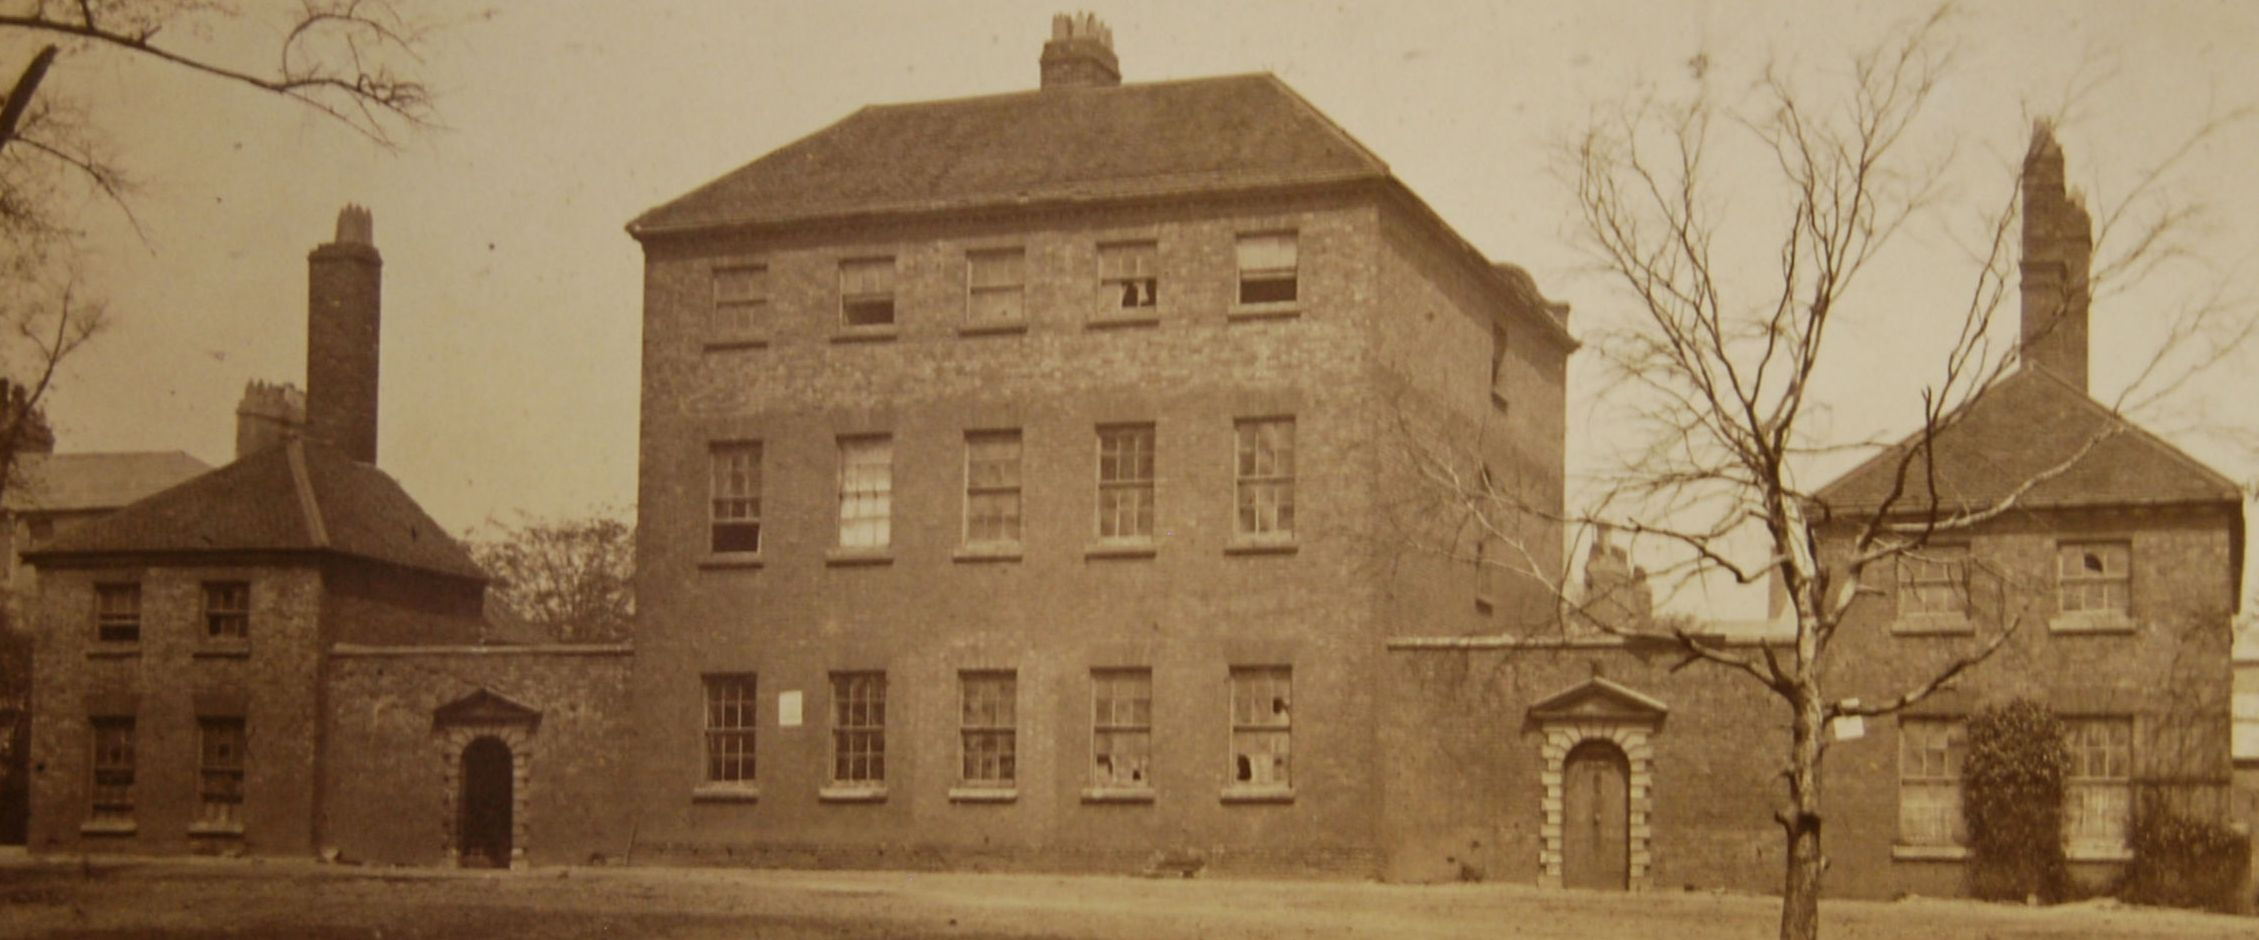 Harper's Hill c1872. Reproduced with permission of the Library of Birmingham